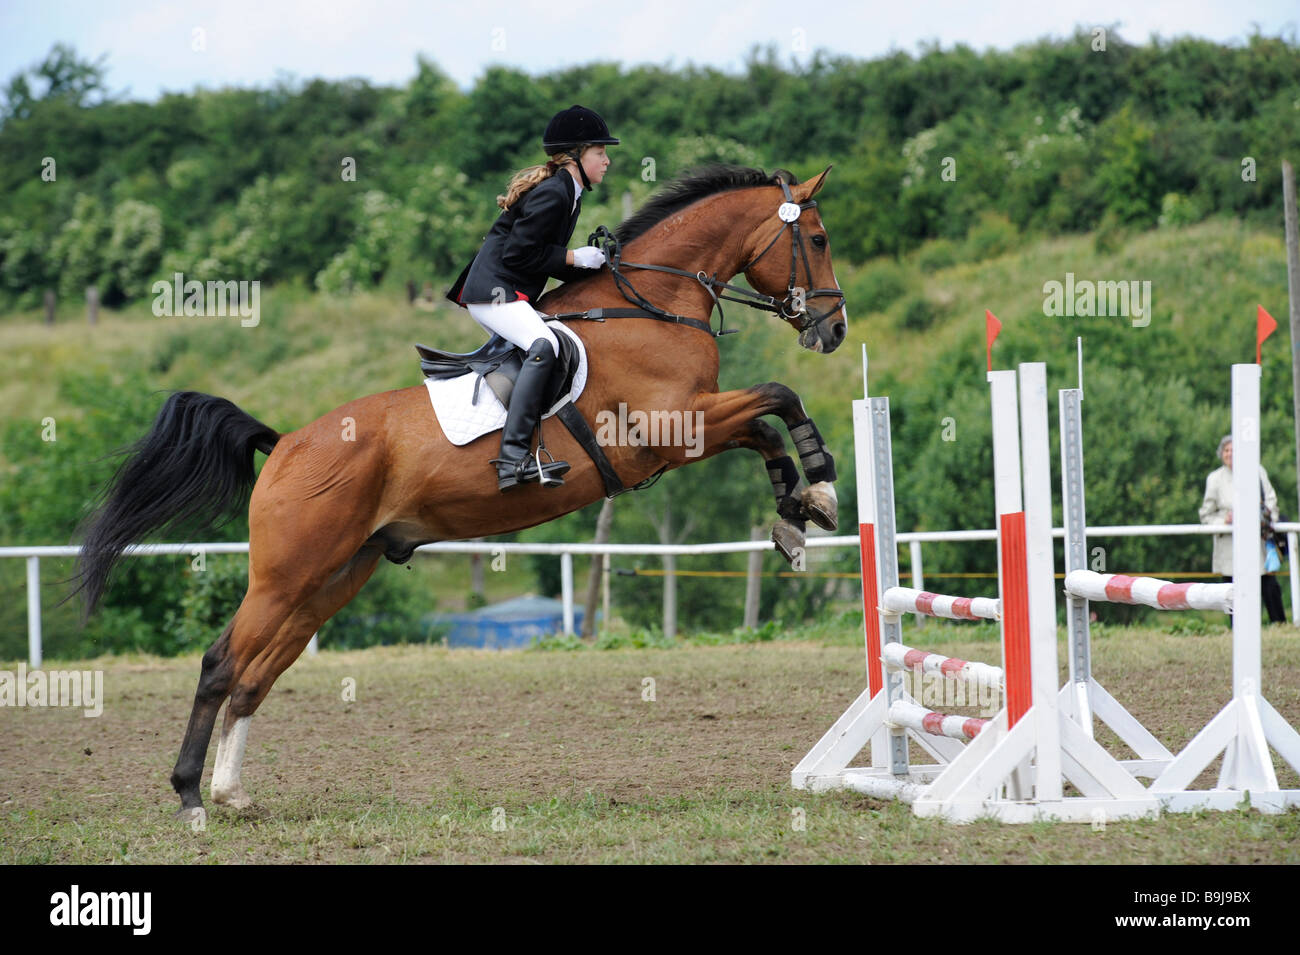 Horse jumping over obstacle, show jumping, Tournament Buttstaedt, Thuringia, Germany, Europe - Stock Image